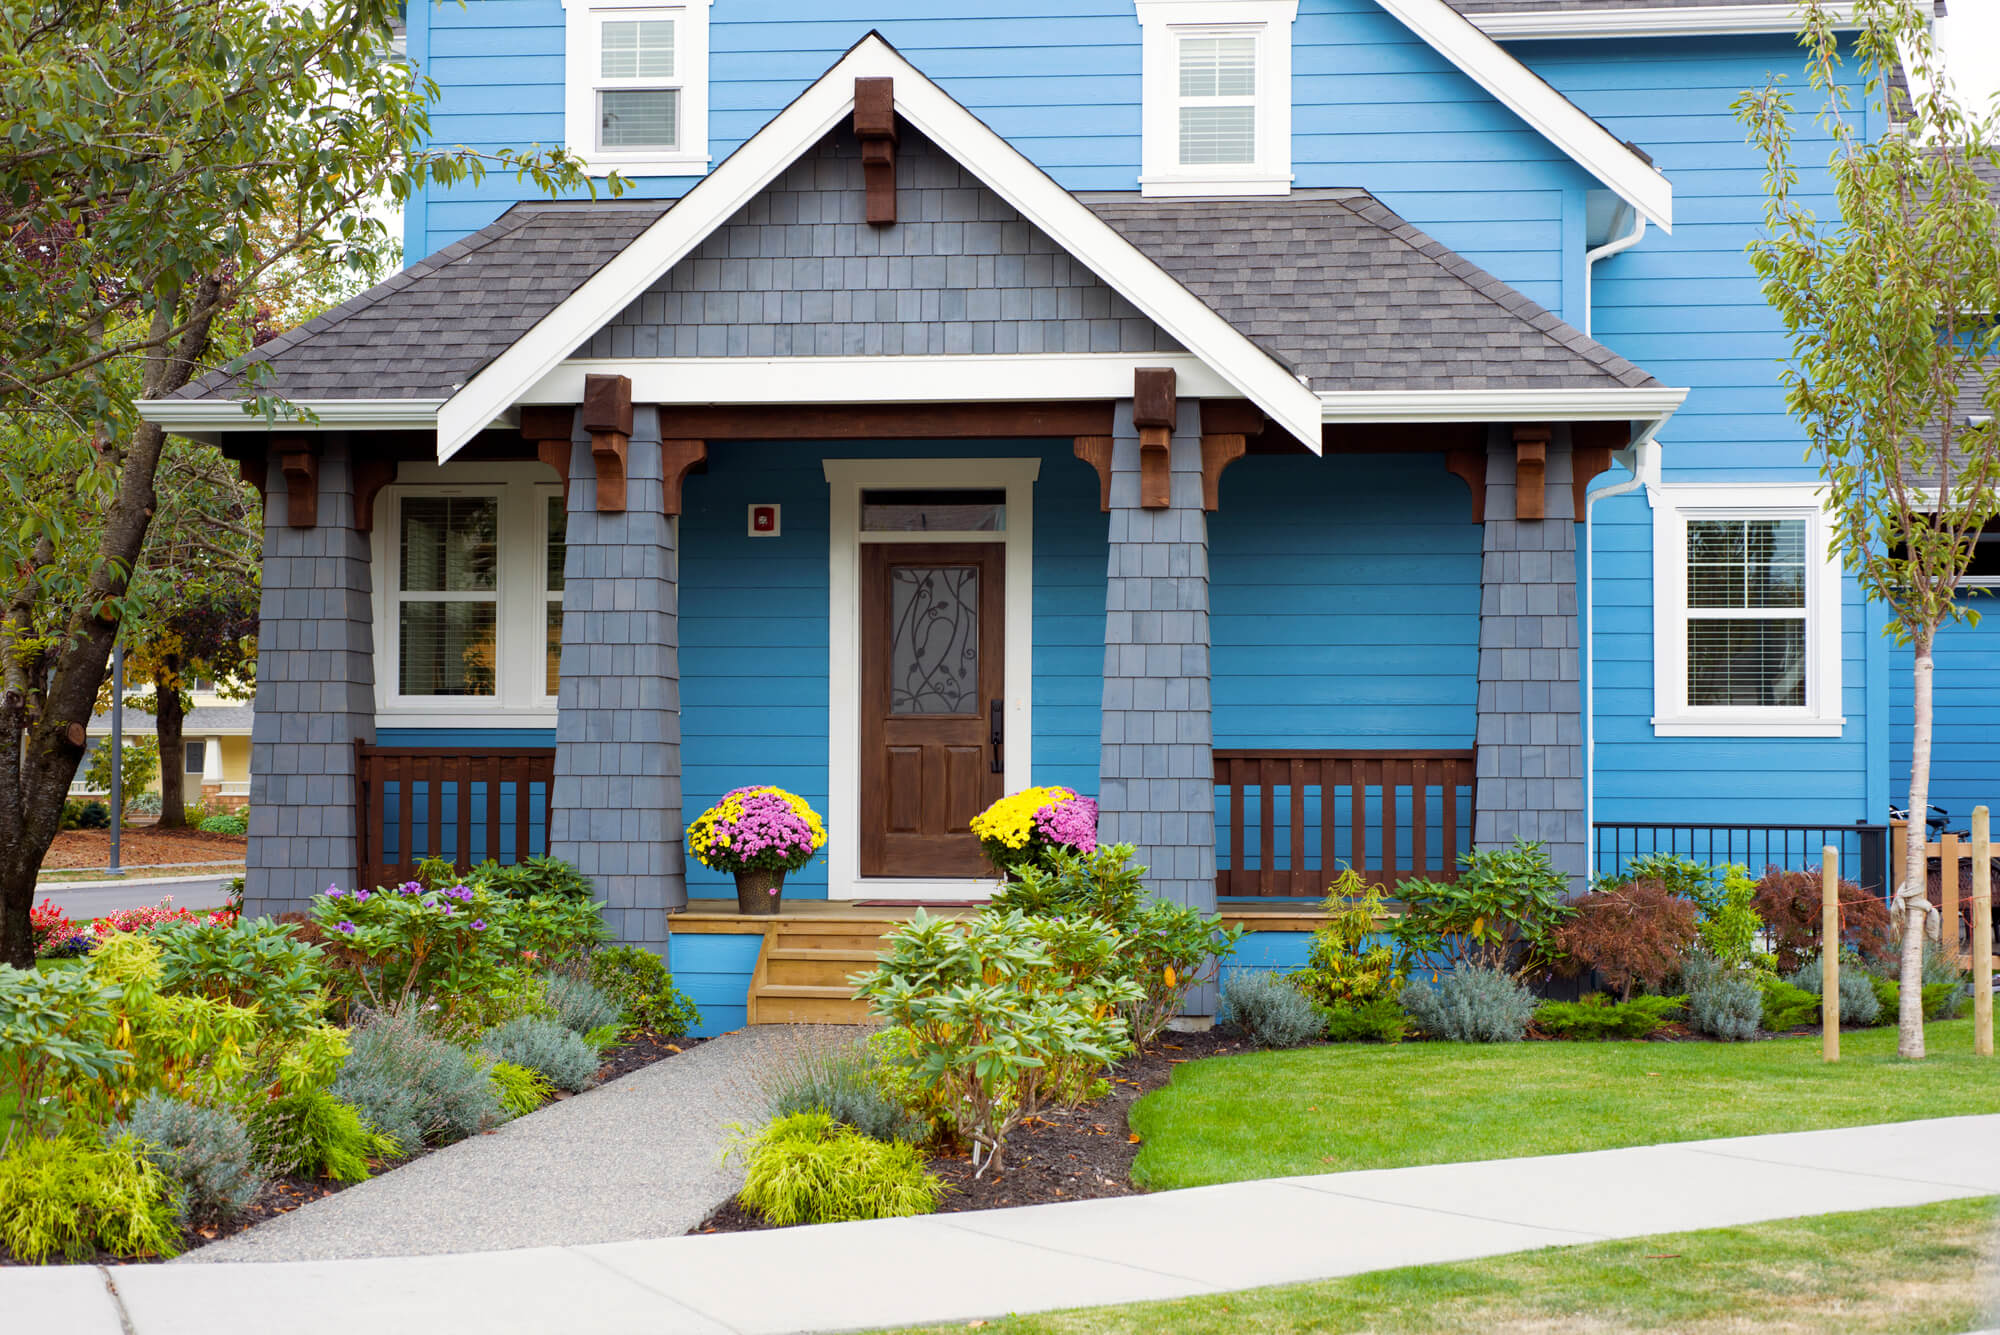 front yard landscaping ideas 1 - 34+ Small House Yard Design  Pics